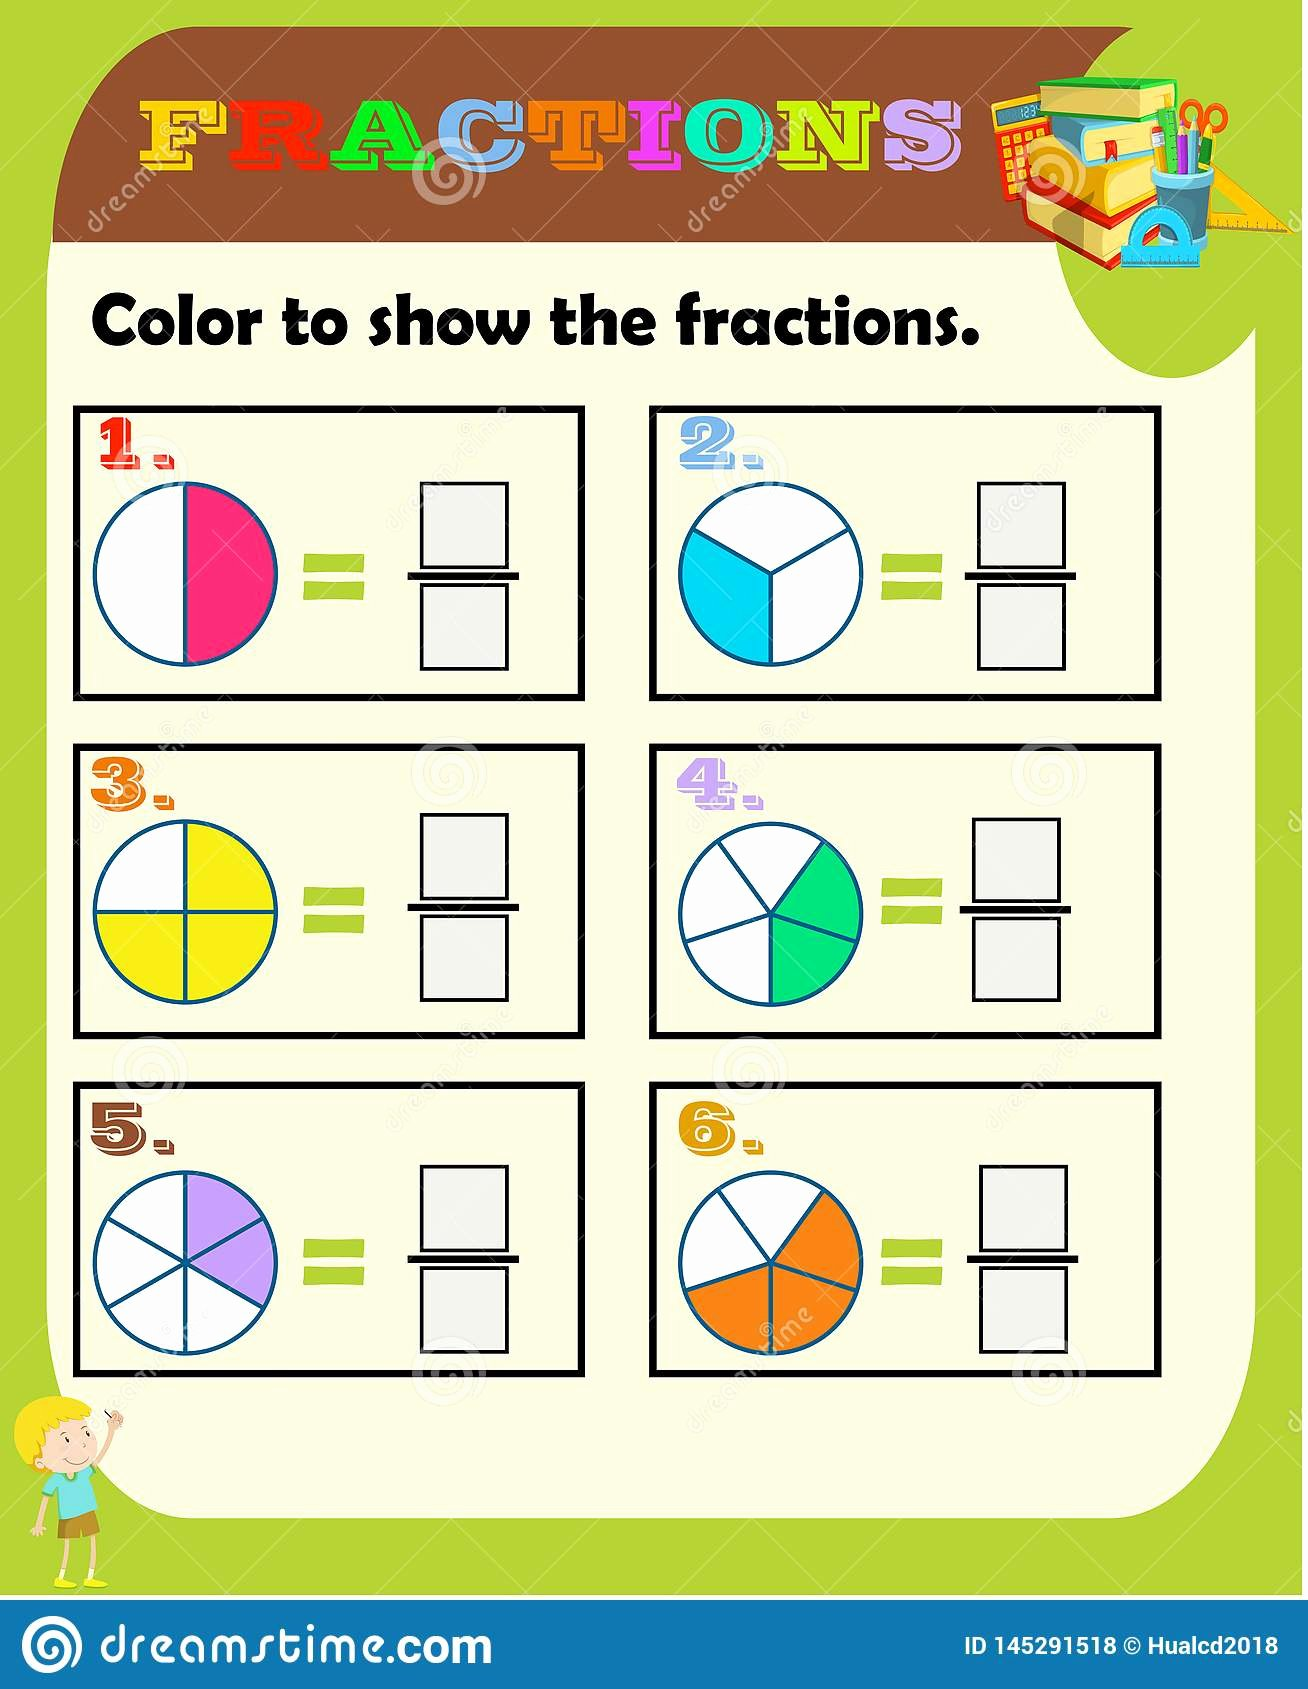 Fraction Worksheets for Preschoolers Ideas Circle the Correct Fraction Mathematics Math Worksheet for